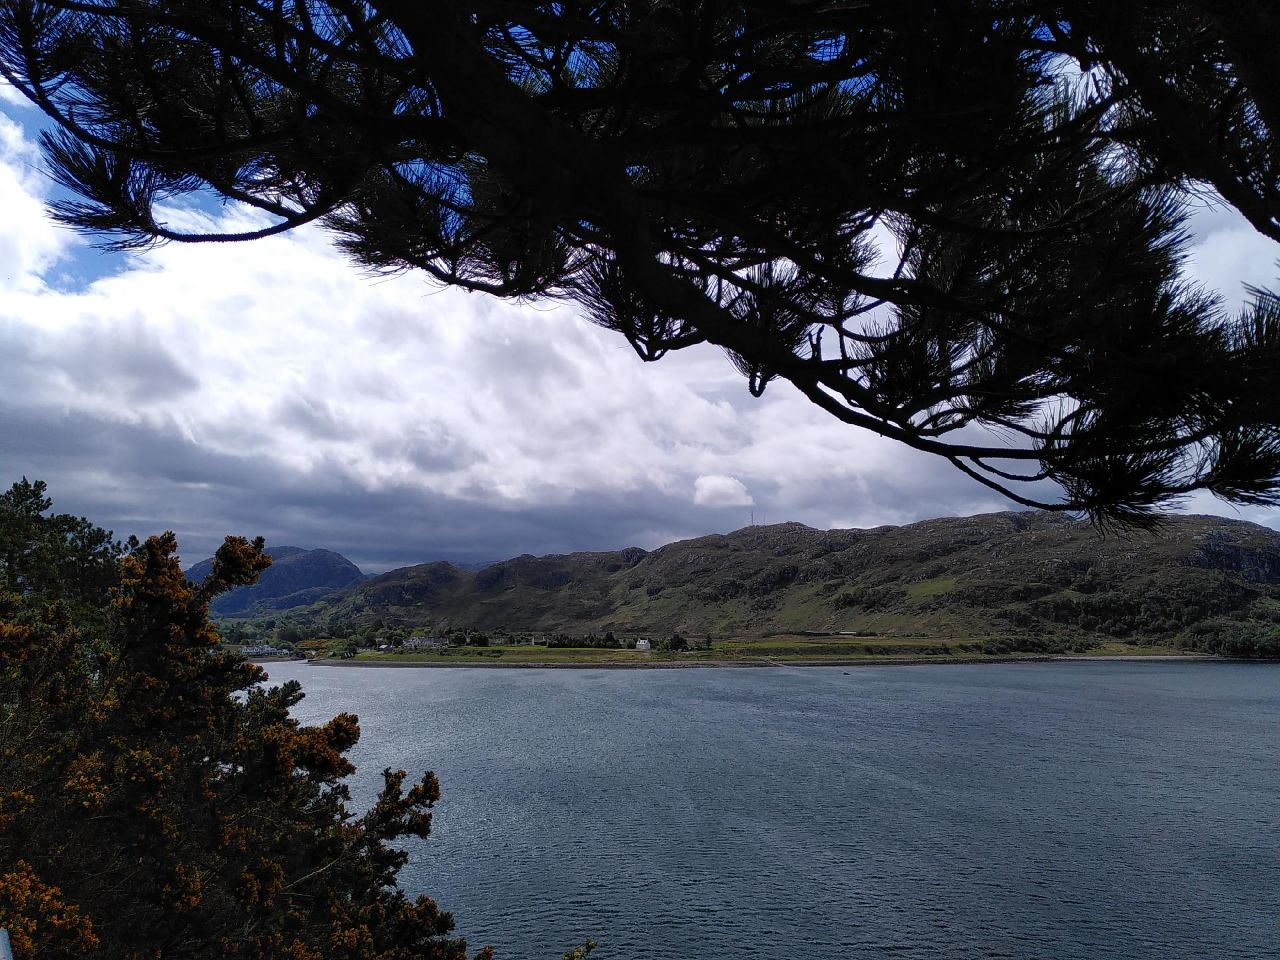 Pine branch thick with needles shades an image of a calm bay looking across to a heathered hill with the village drawing itself above the shore. Dark clouds overhead.